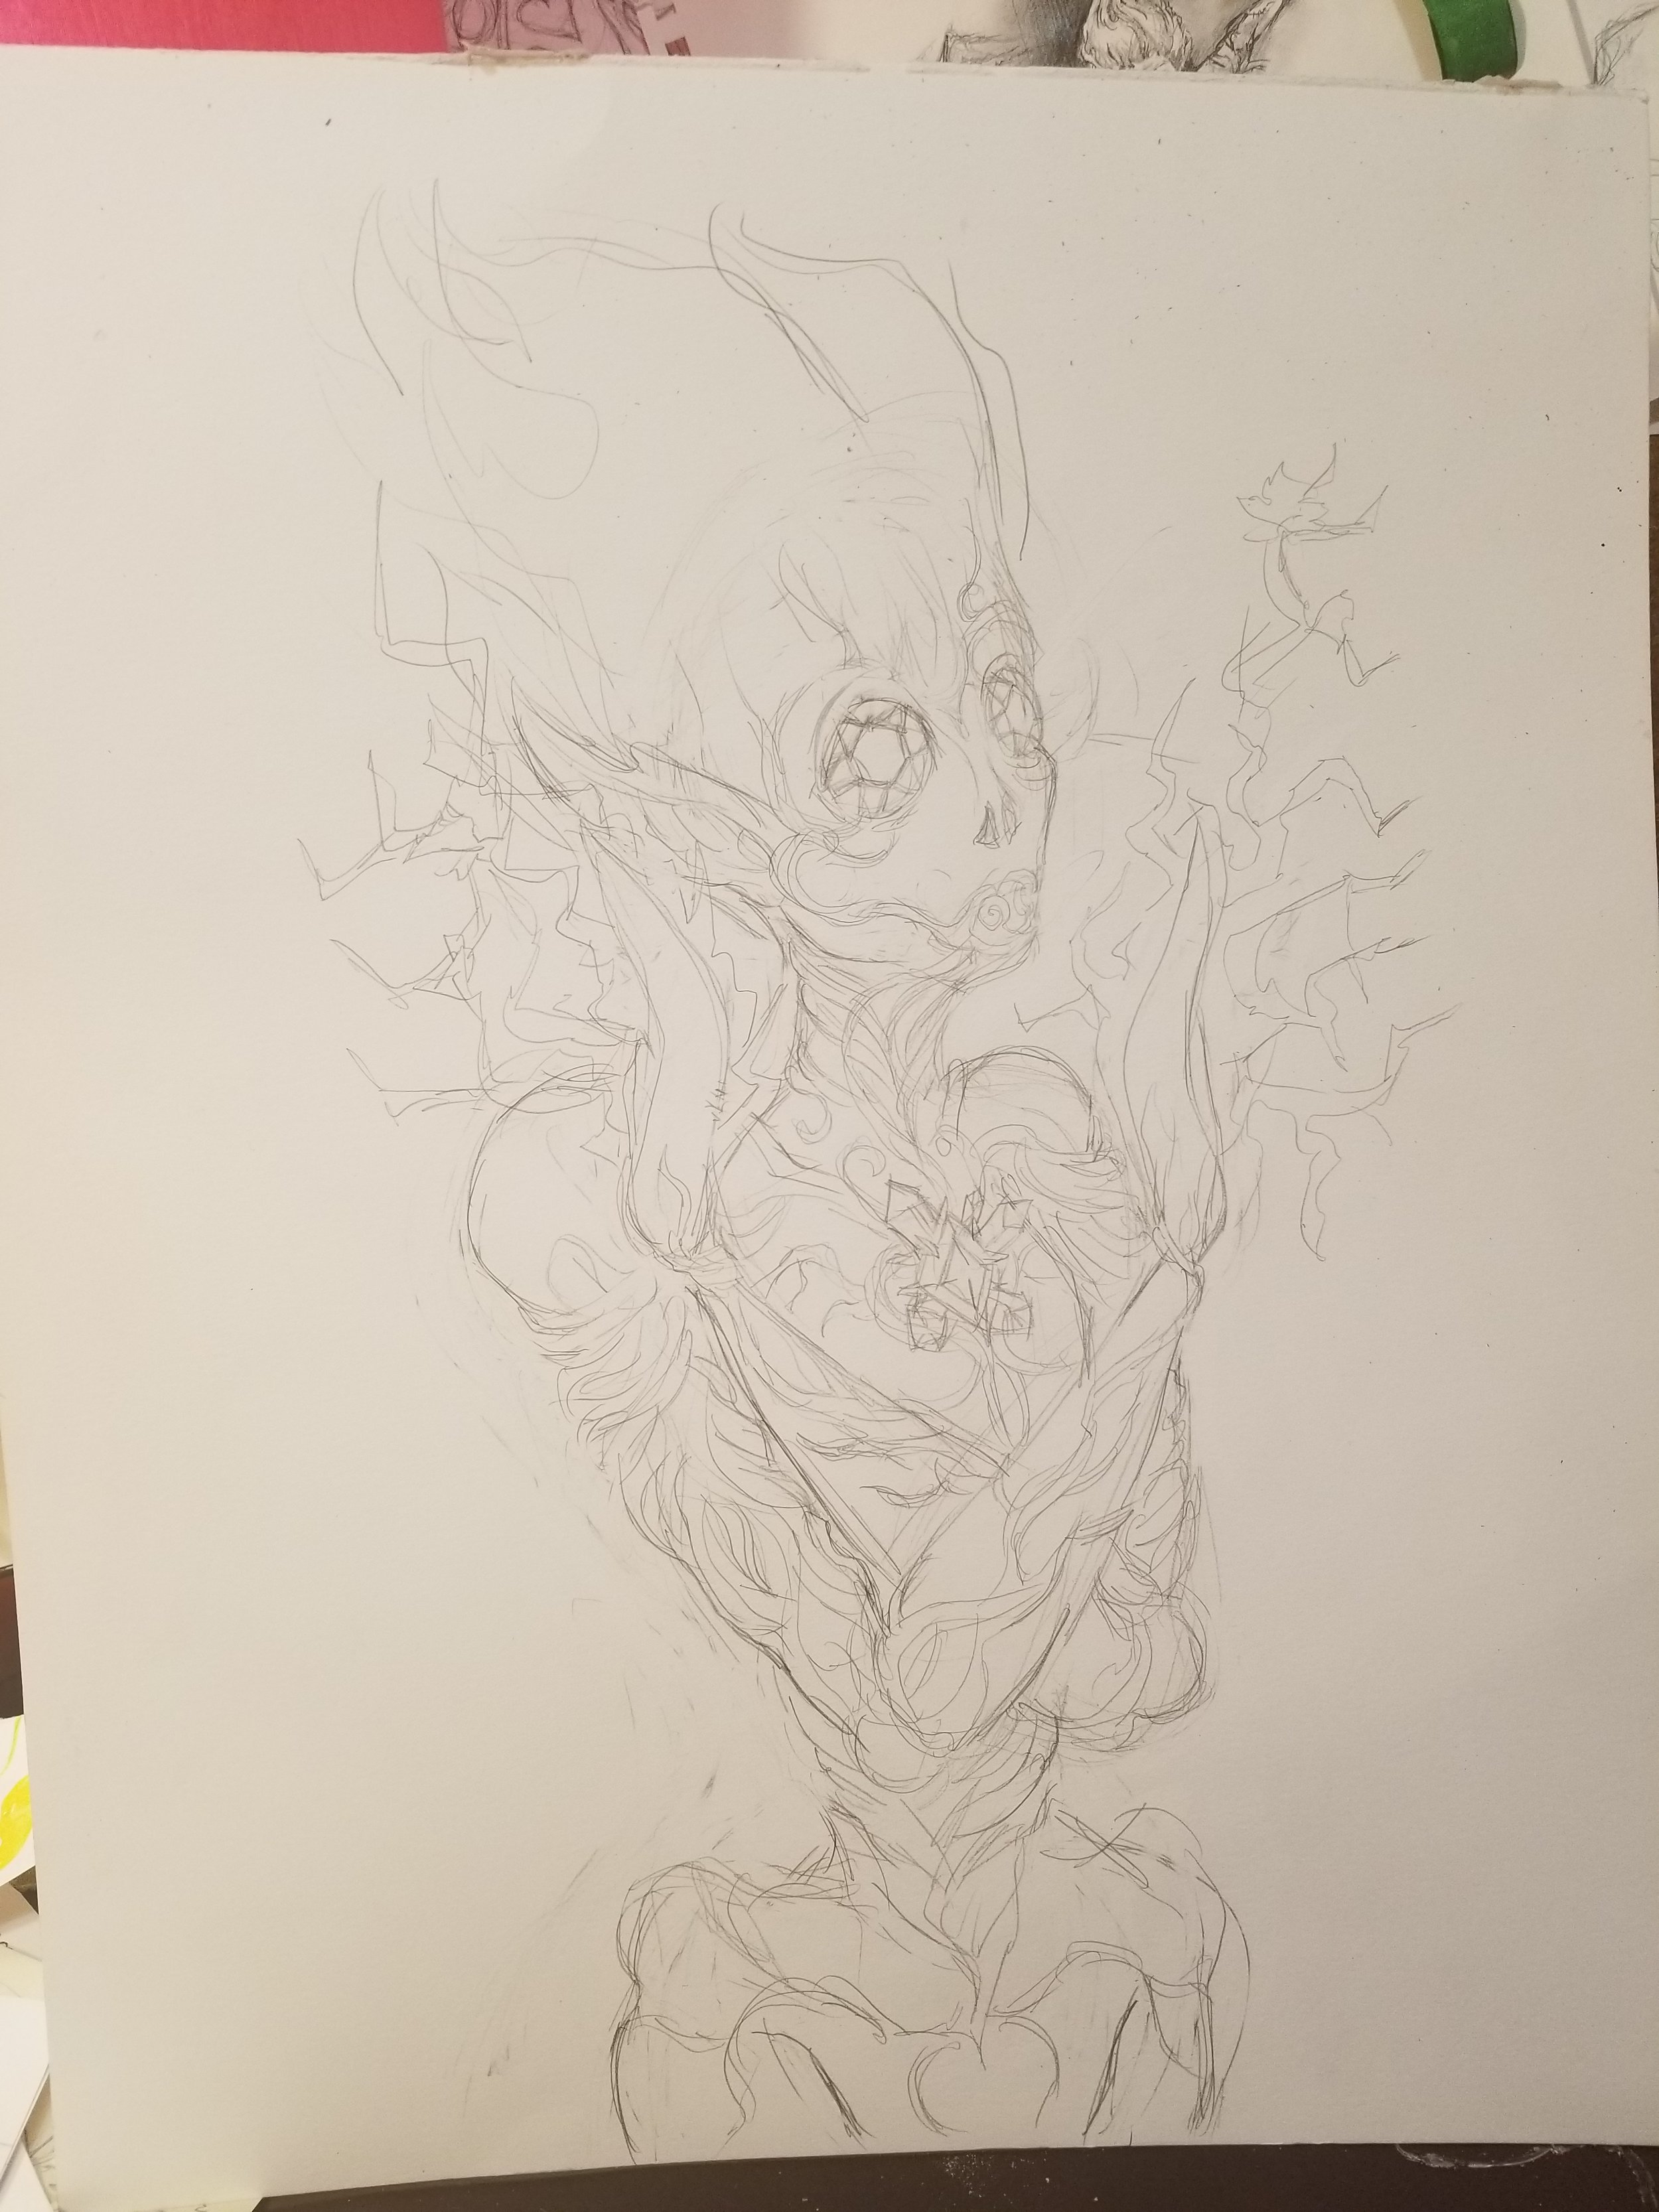 The Initial Sketch